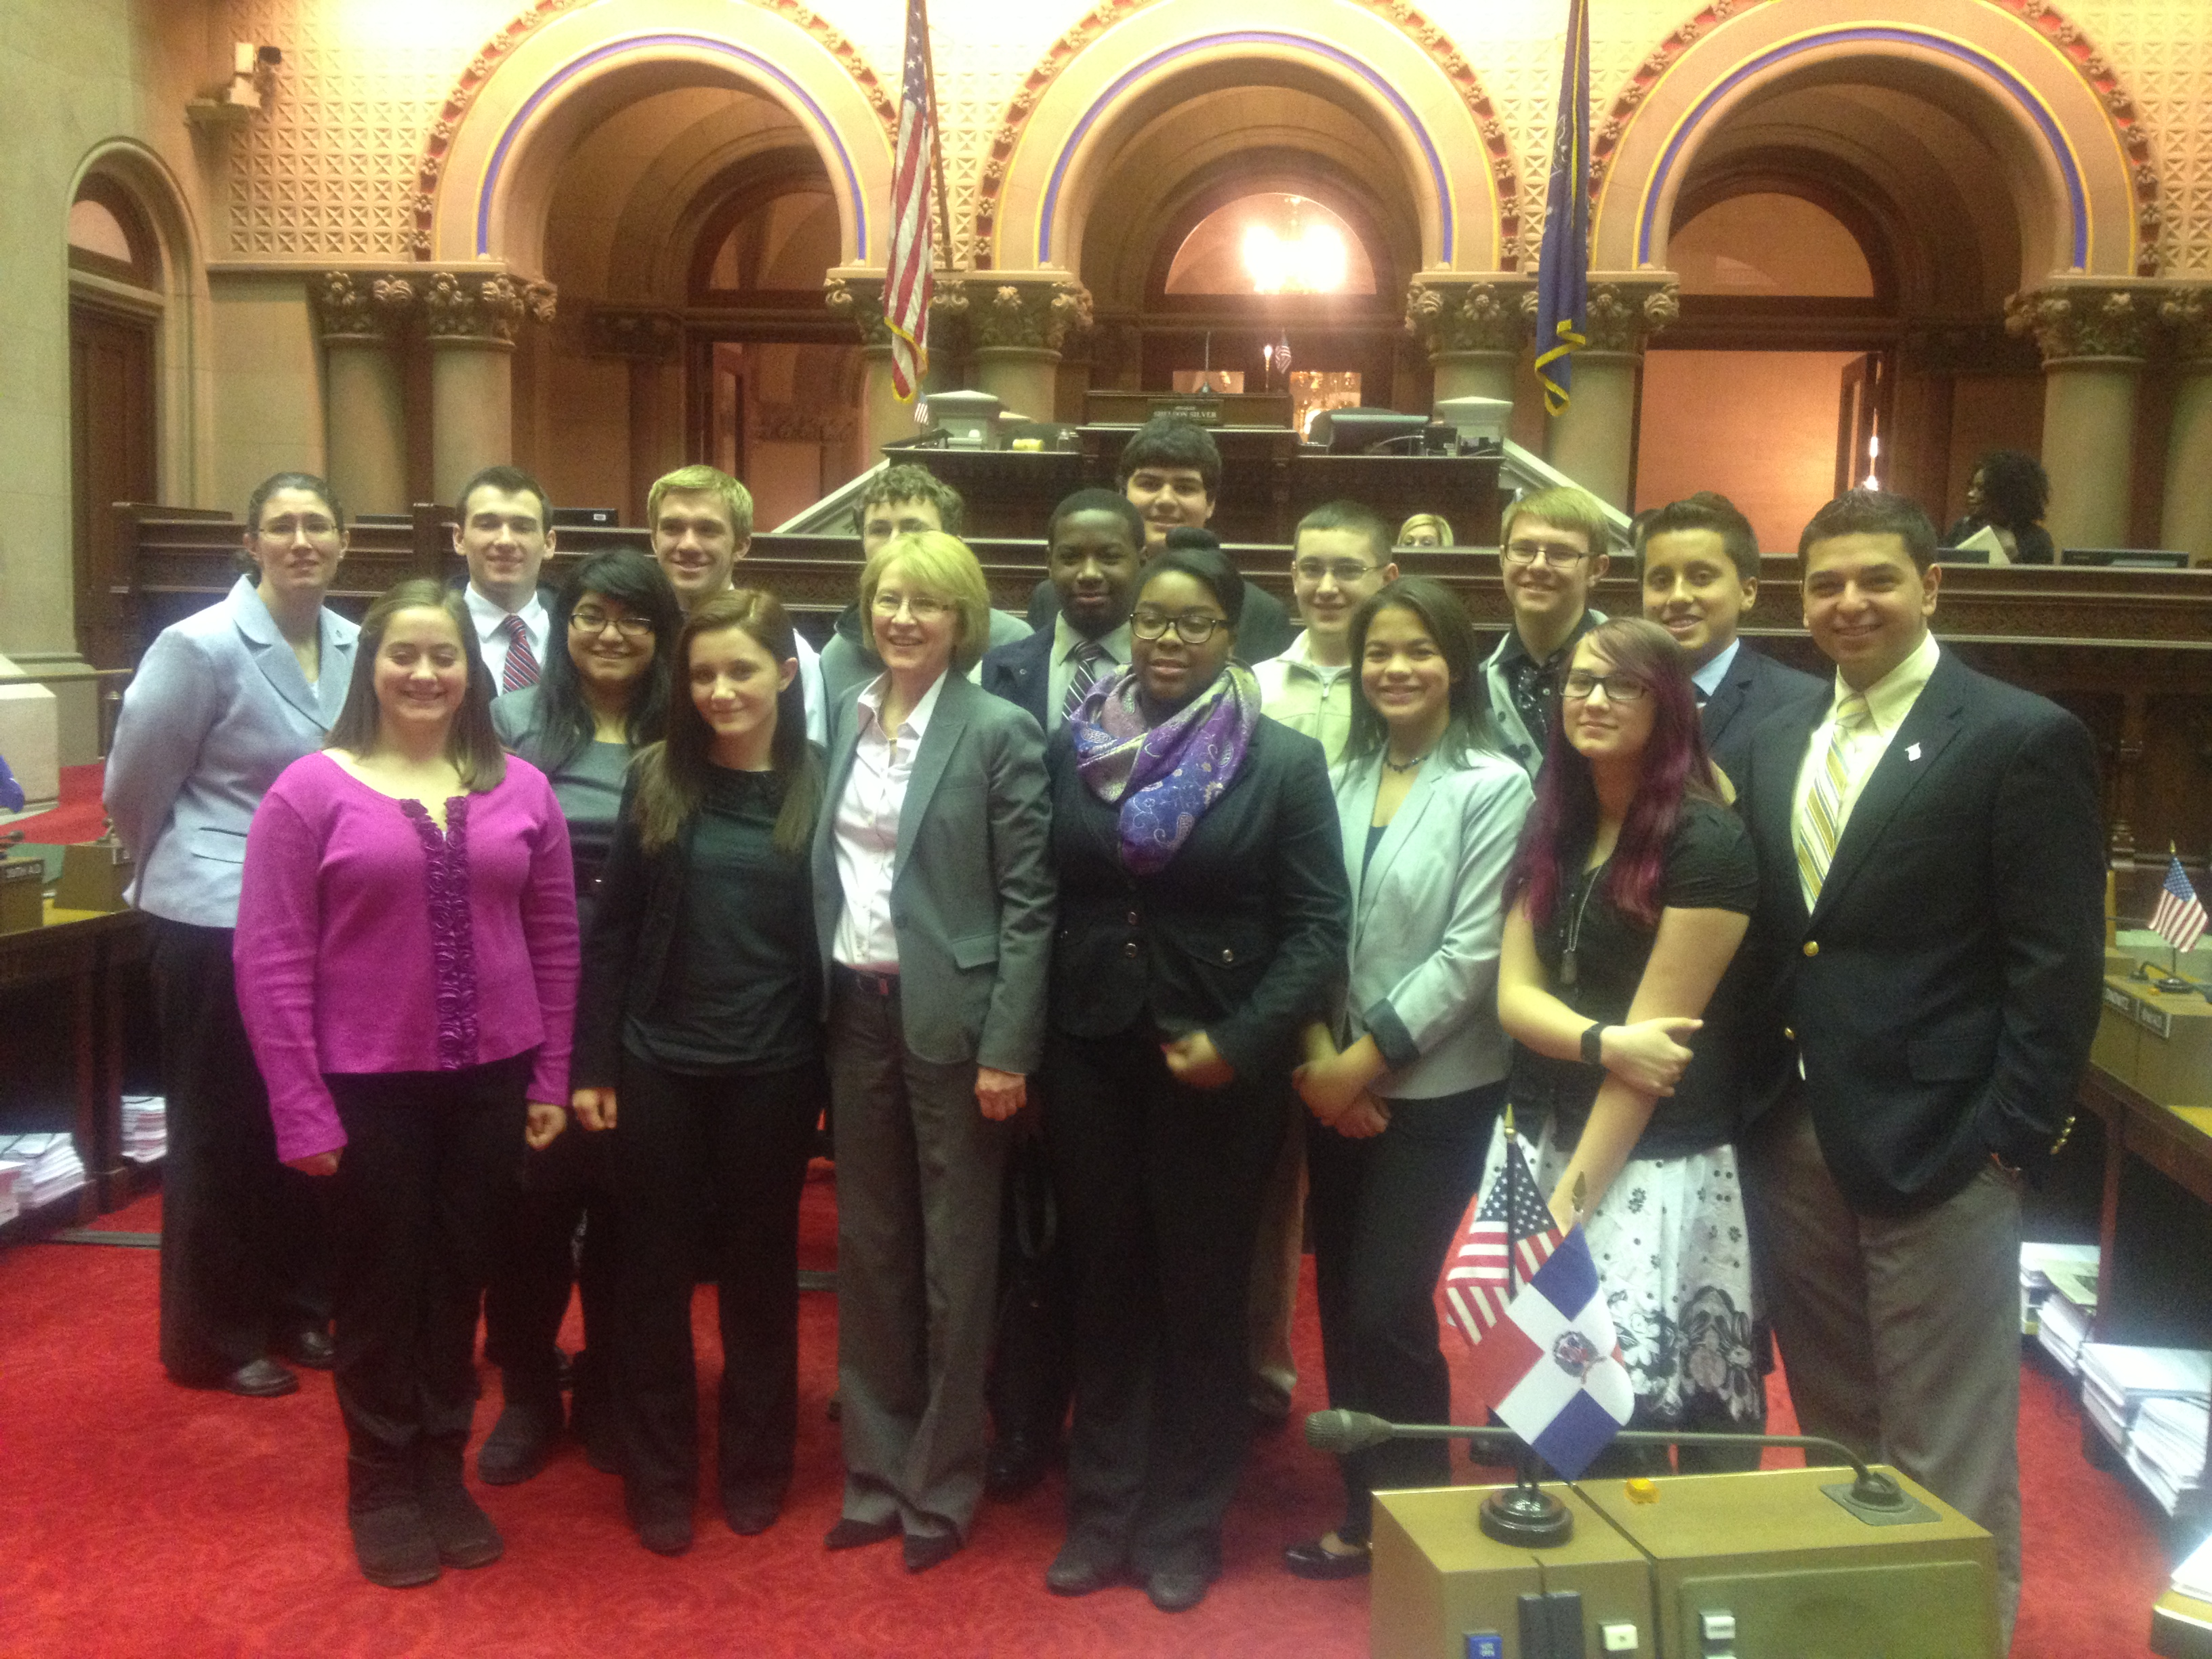 Assemblywoman Gunther was visited by members of the Orange County Youth Bureau in Albany.